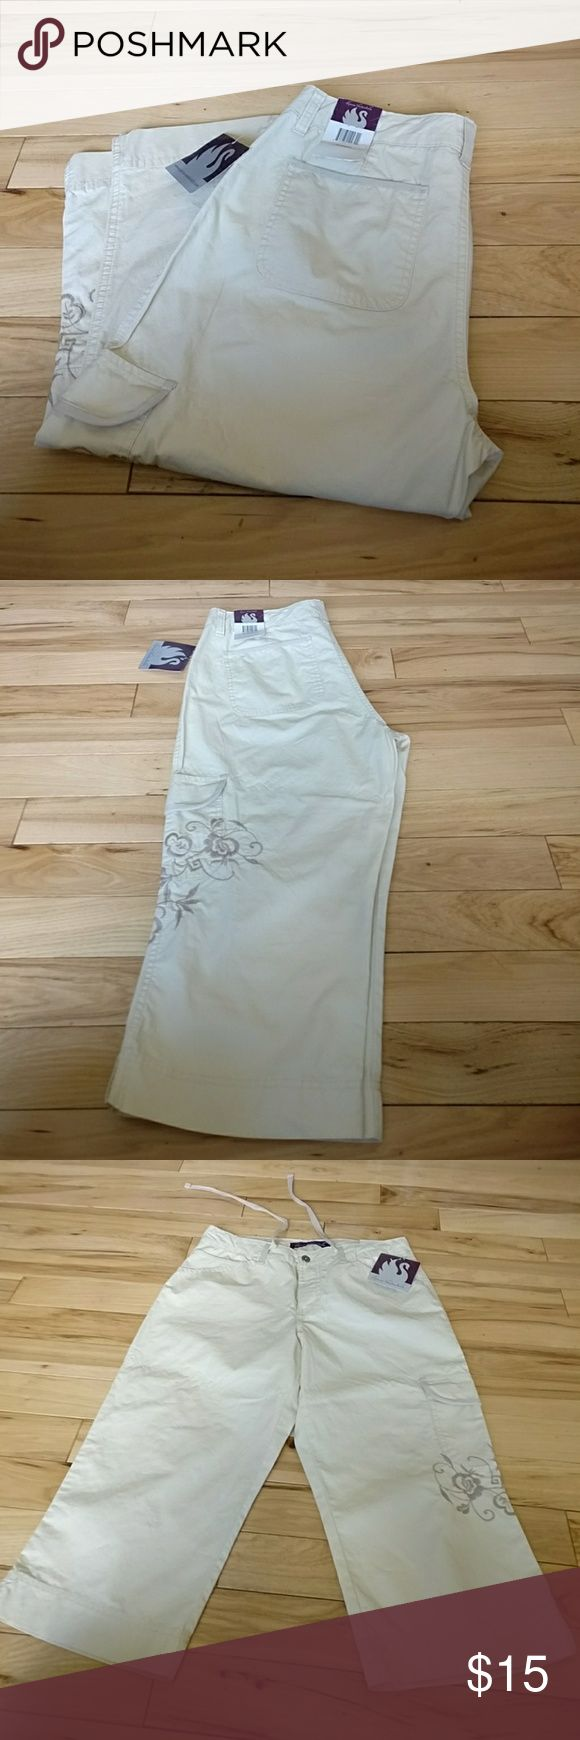 Gloria Vanderbilt capris pants 10 stretch Gloria Vanderbilt capri pants size 10 stretch new with tags. Yeah really sexy I'm selling them at a great price so get them today yeah! Gloria Vanderbilt Pants Capris